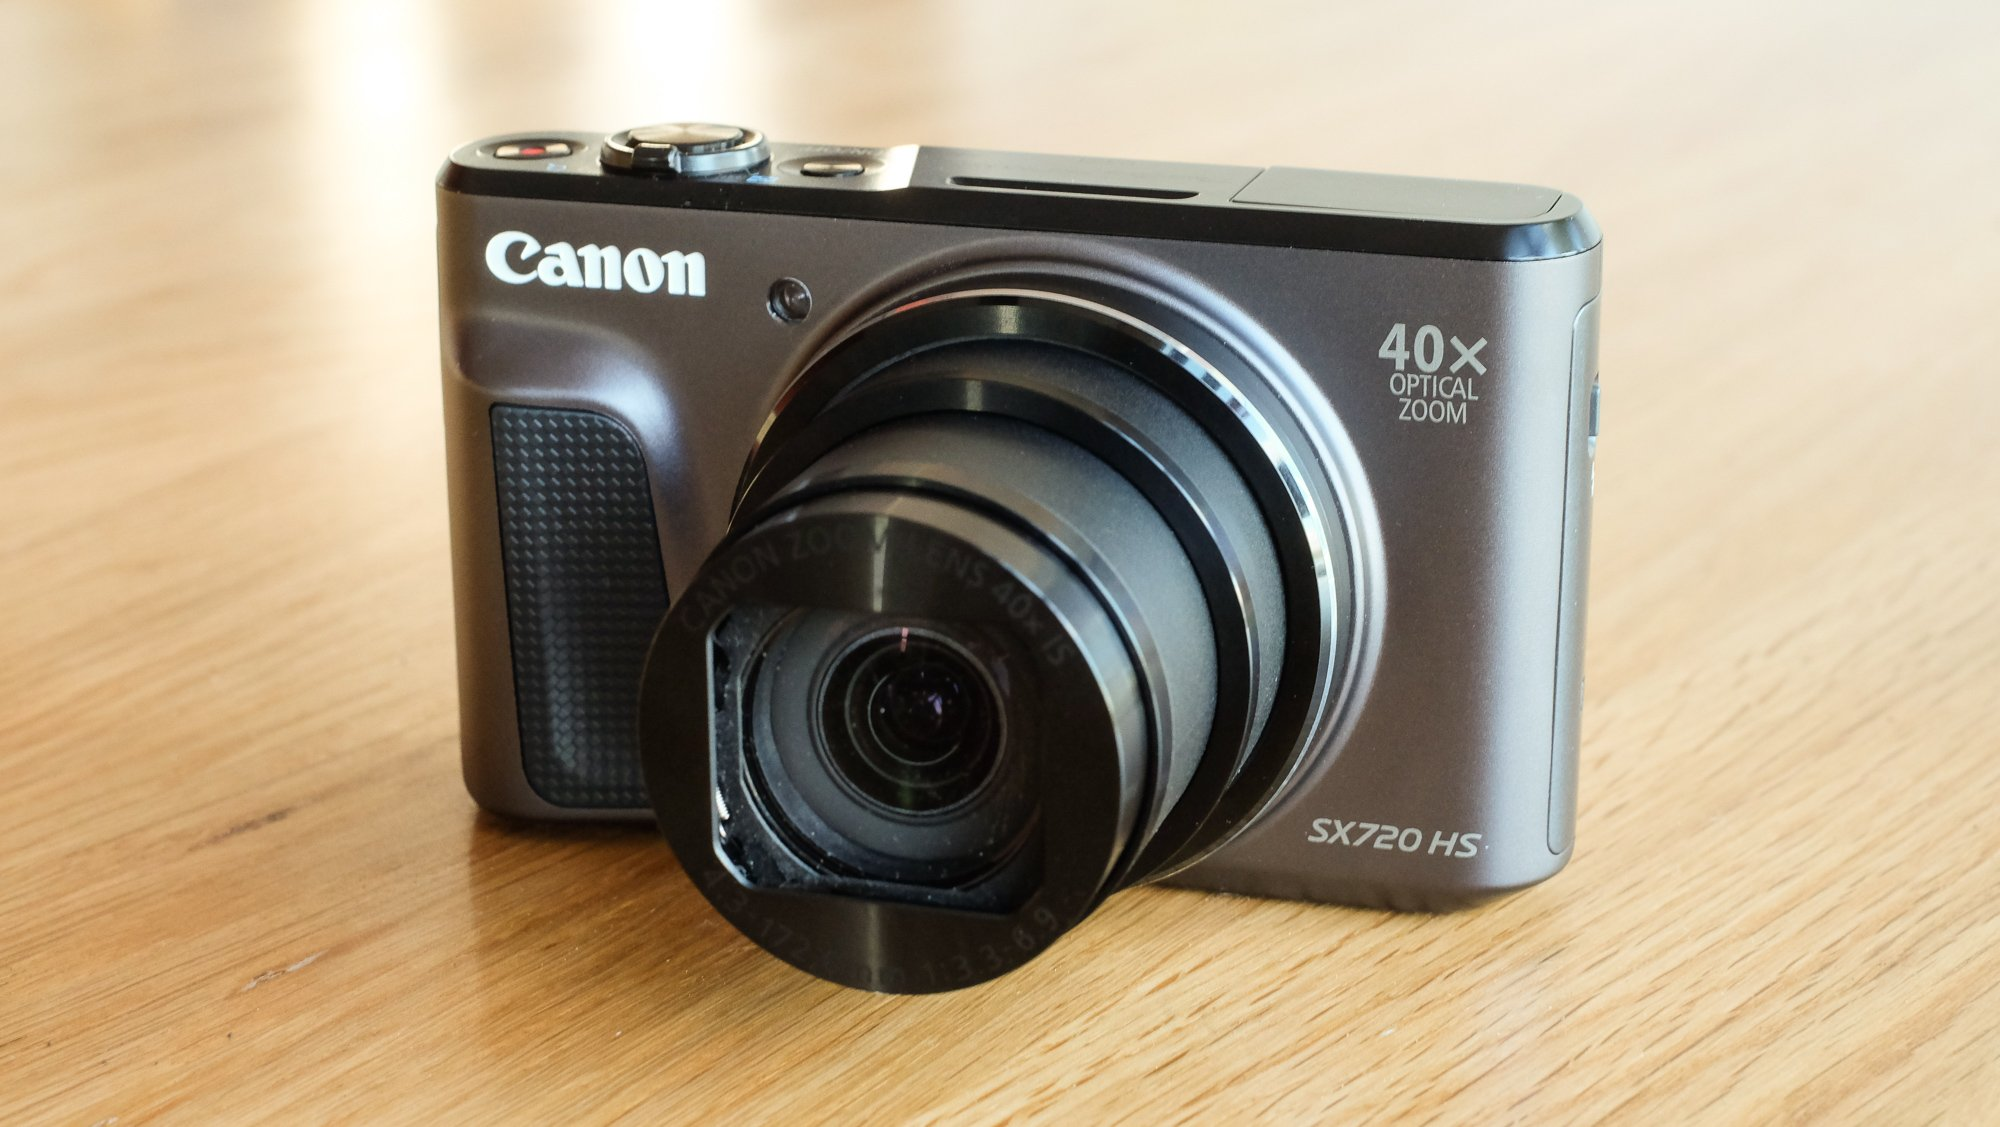 canon sx720 hs review biggest ever 40x zoom in a compact. Black Bedroom Furniture Sets. Home Design Ideas